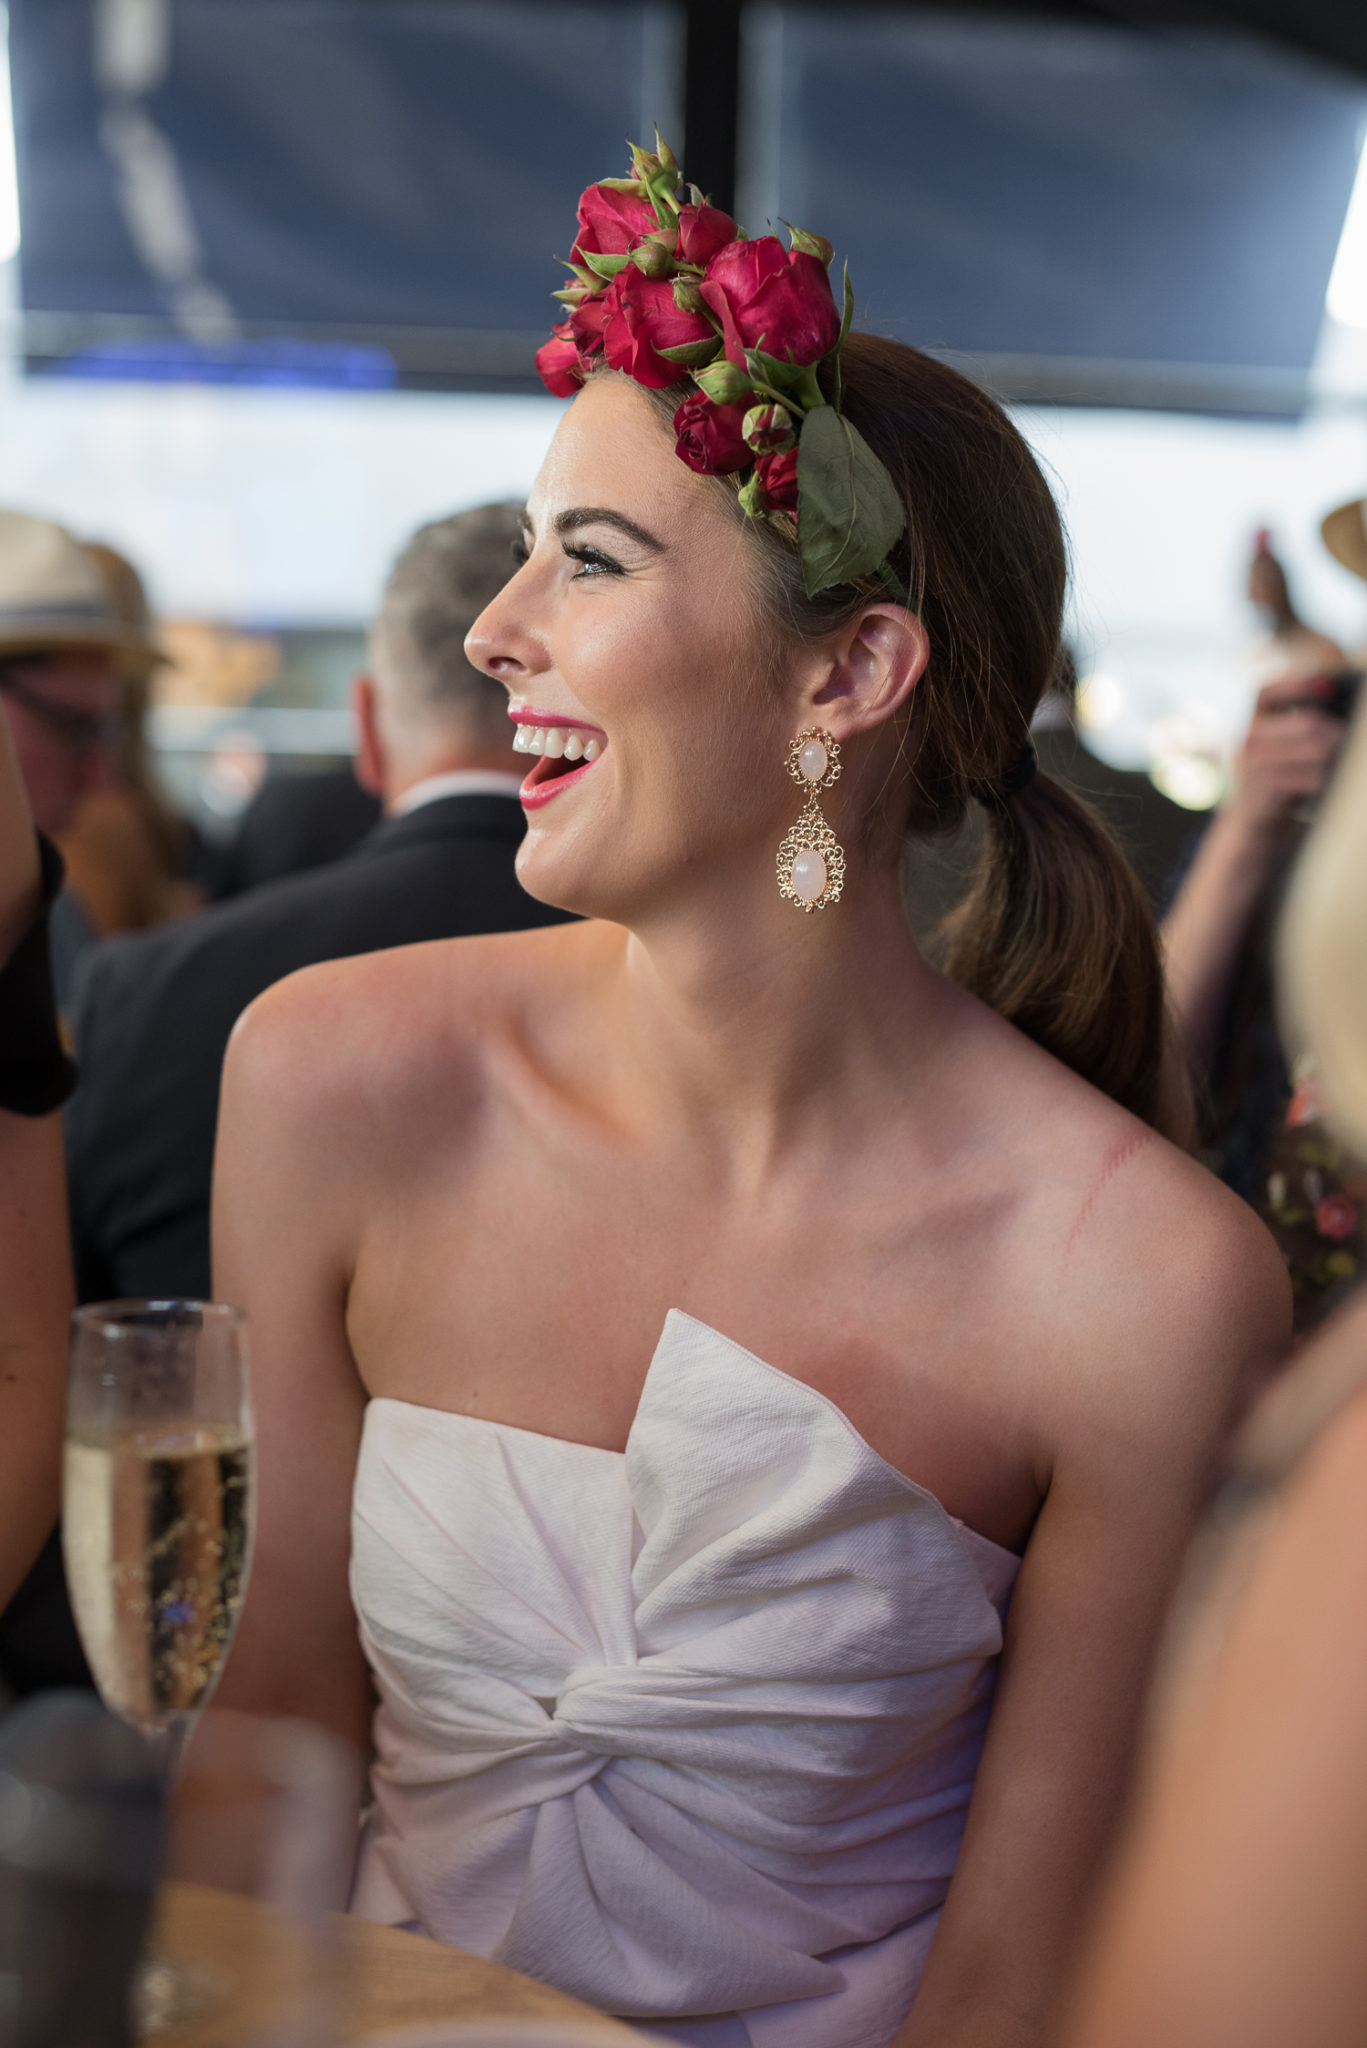 melbourne-cup-day-lavazza-whatwouldkarldo_0056